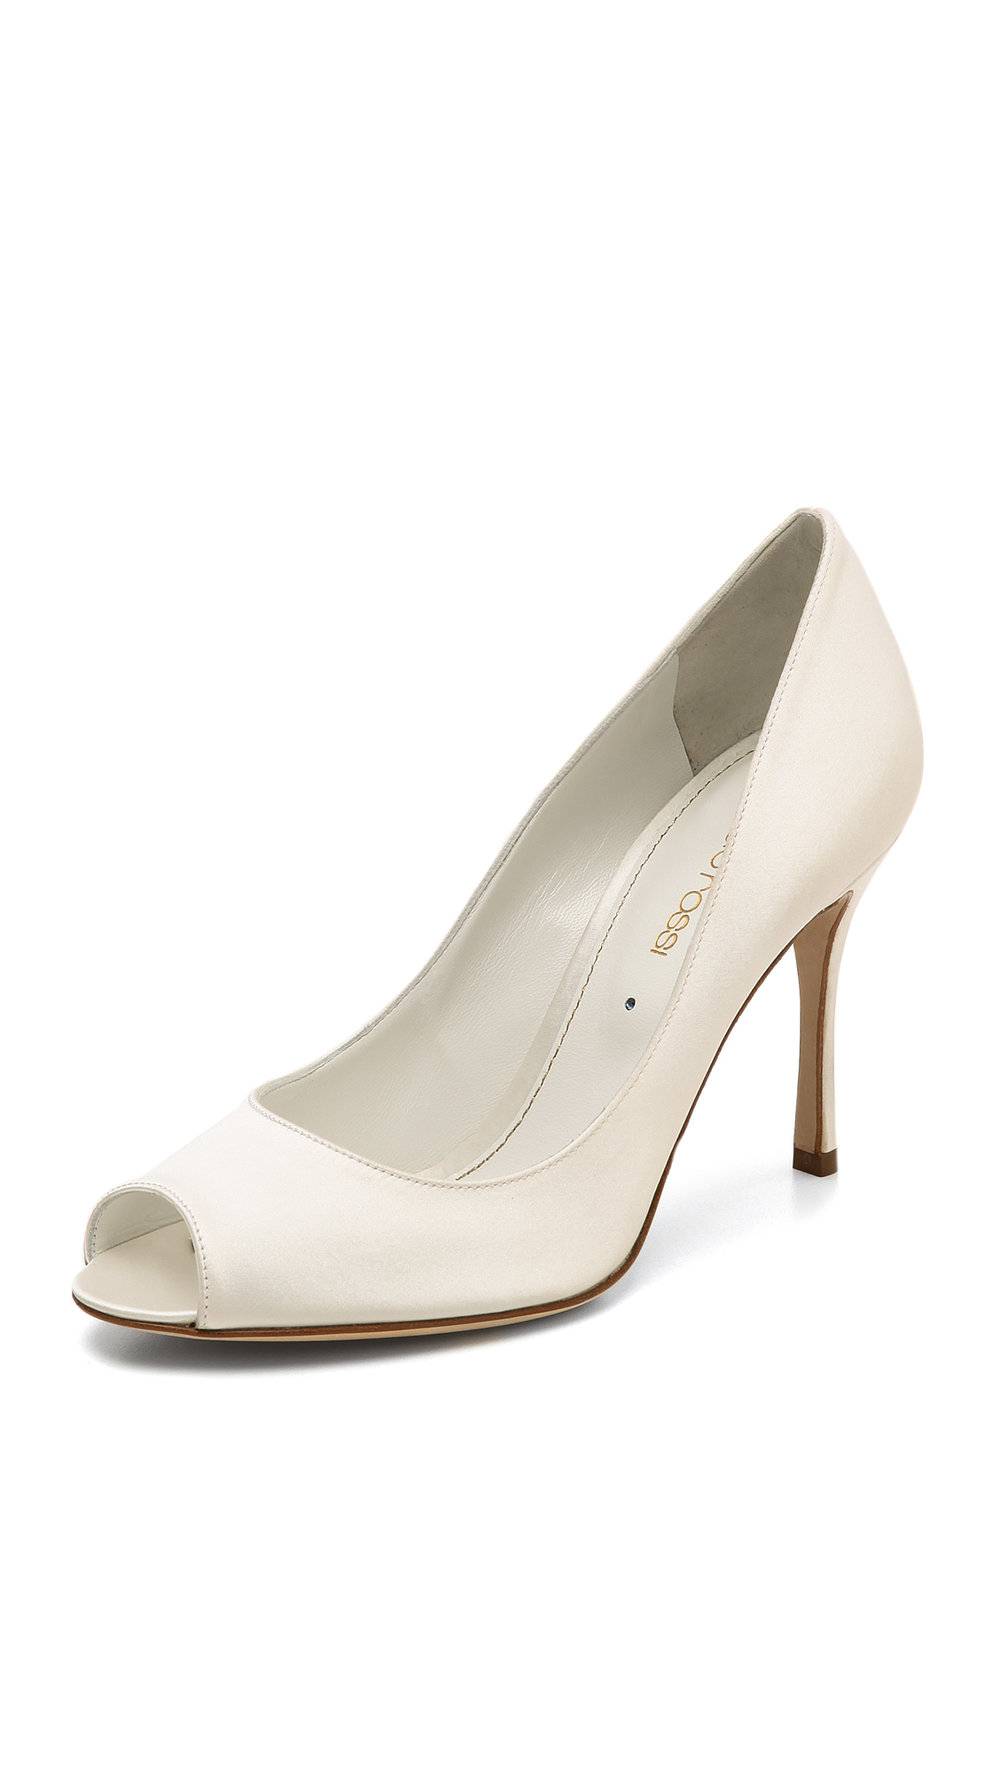 sergio-rossi-white-godiva-peeptoe-pump-white-product-1-22632863-0-789971894-normal.jpeg